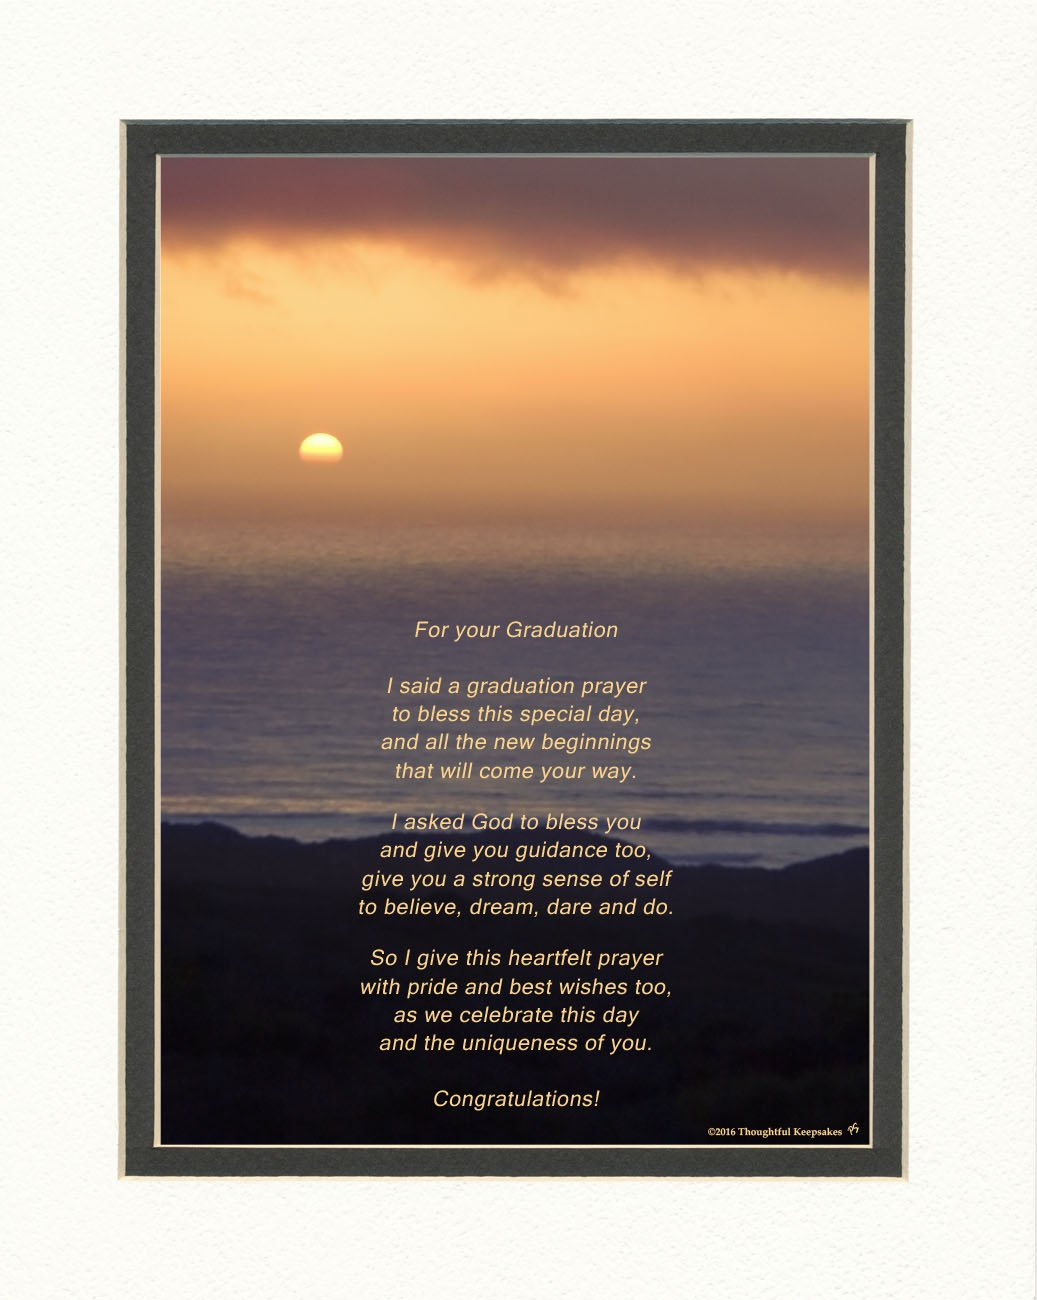 Graduation Gift with ''Graduation Prayer Poem'' Ocean Sunset Photo, 8x10 Double Matted. A Special Keepsake Gift for Graduate. Unique High School or College Graduation Gifts.